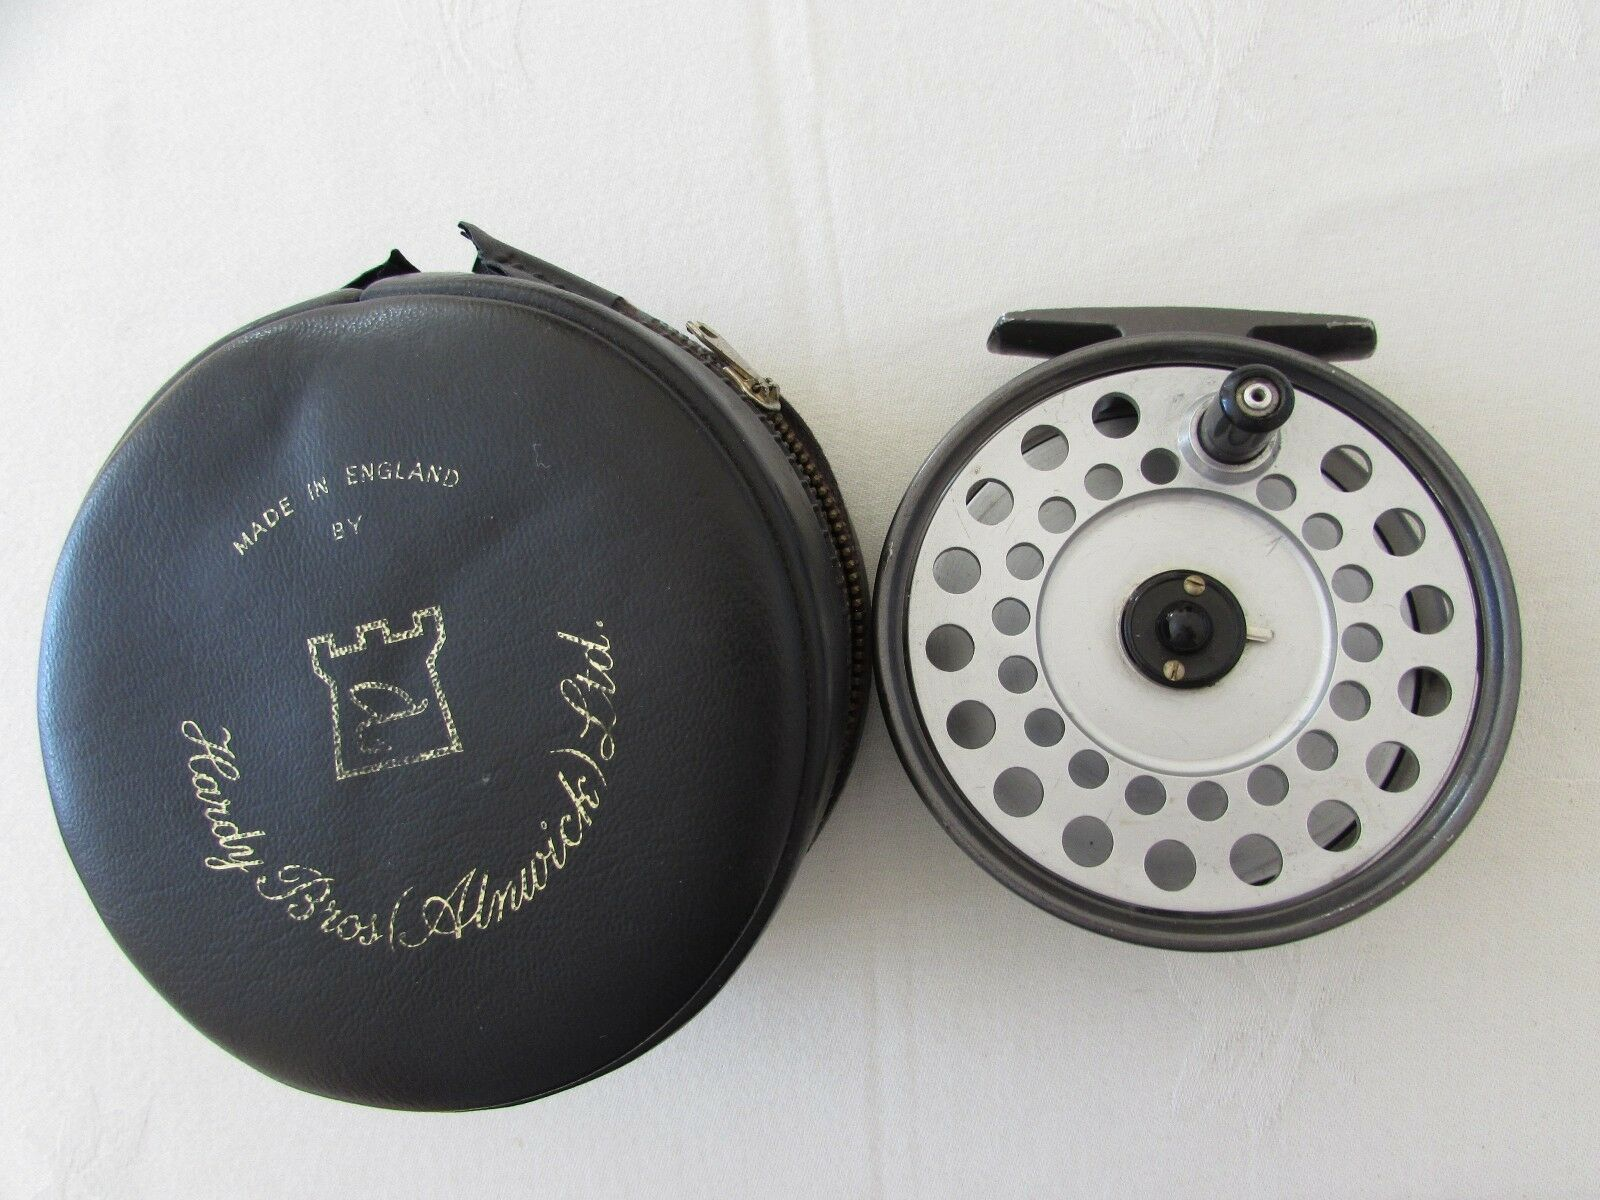 V good vintage hardy viscount 140 trout fly fishing reel  3 + 5 8ths + case  the lowest price